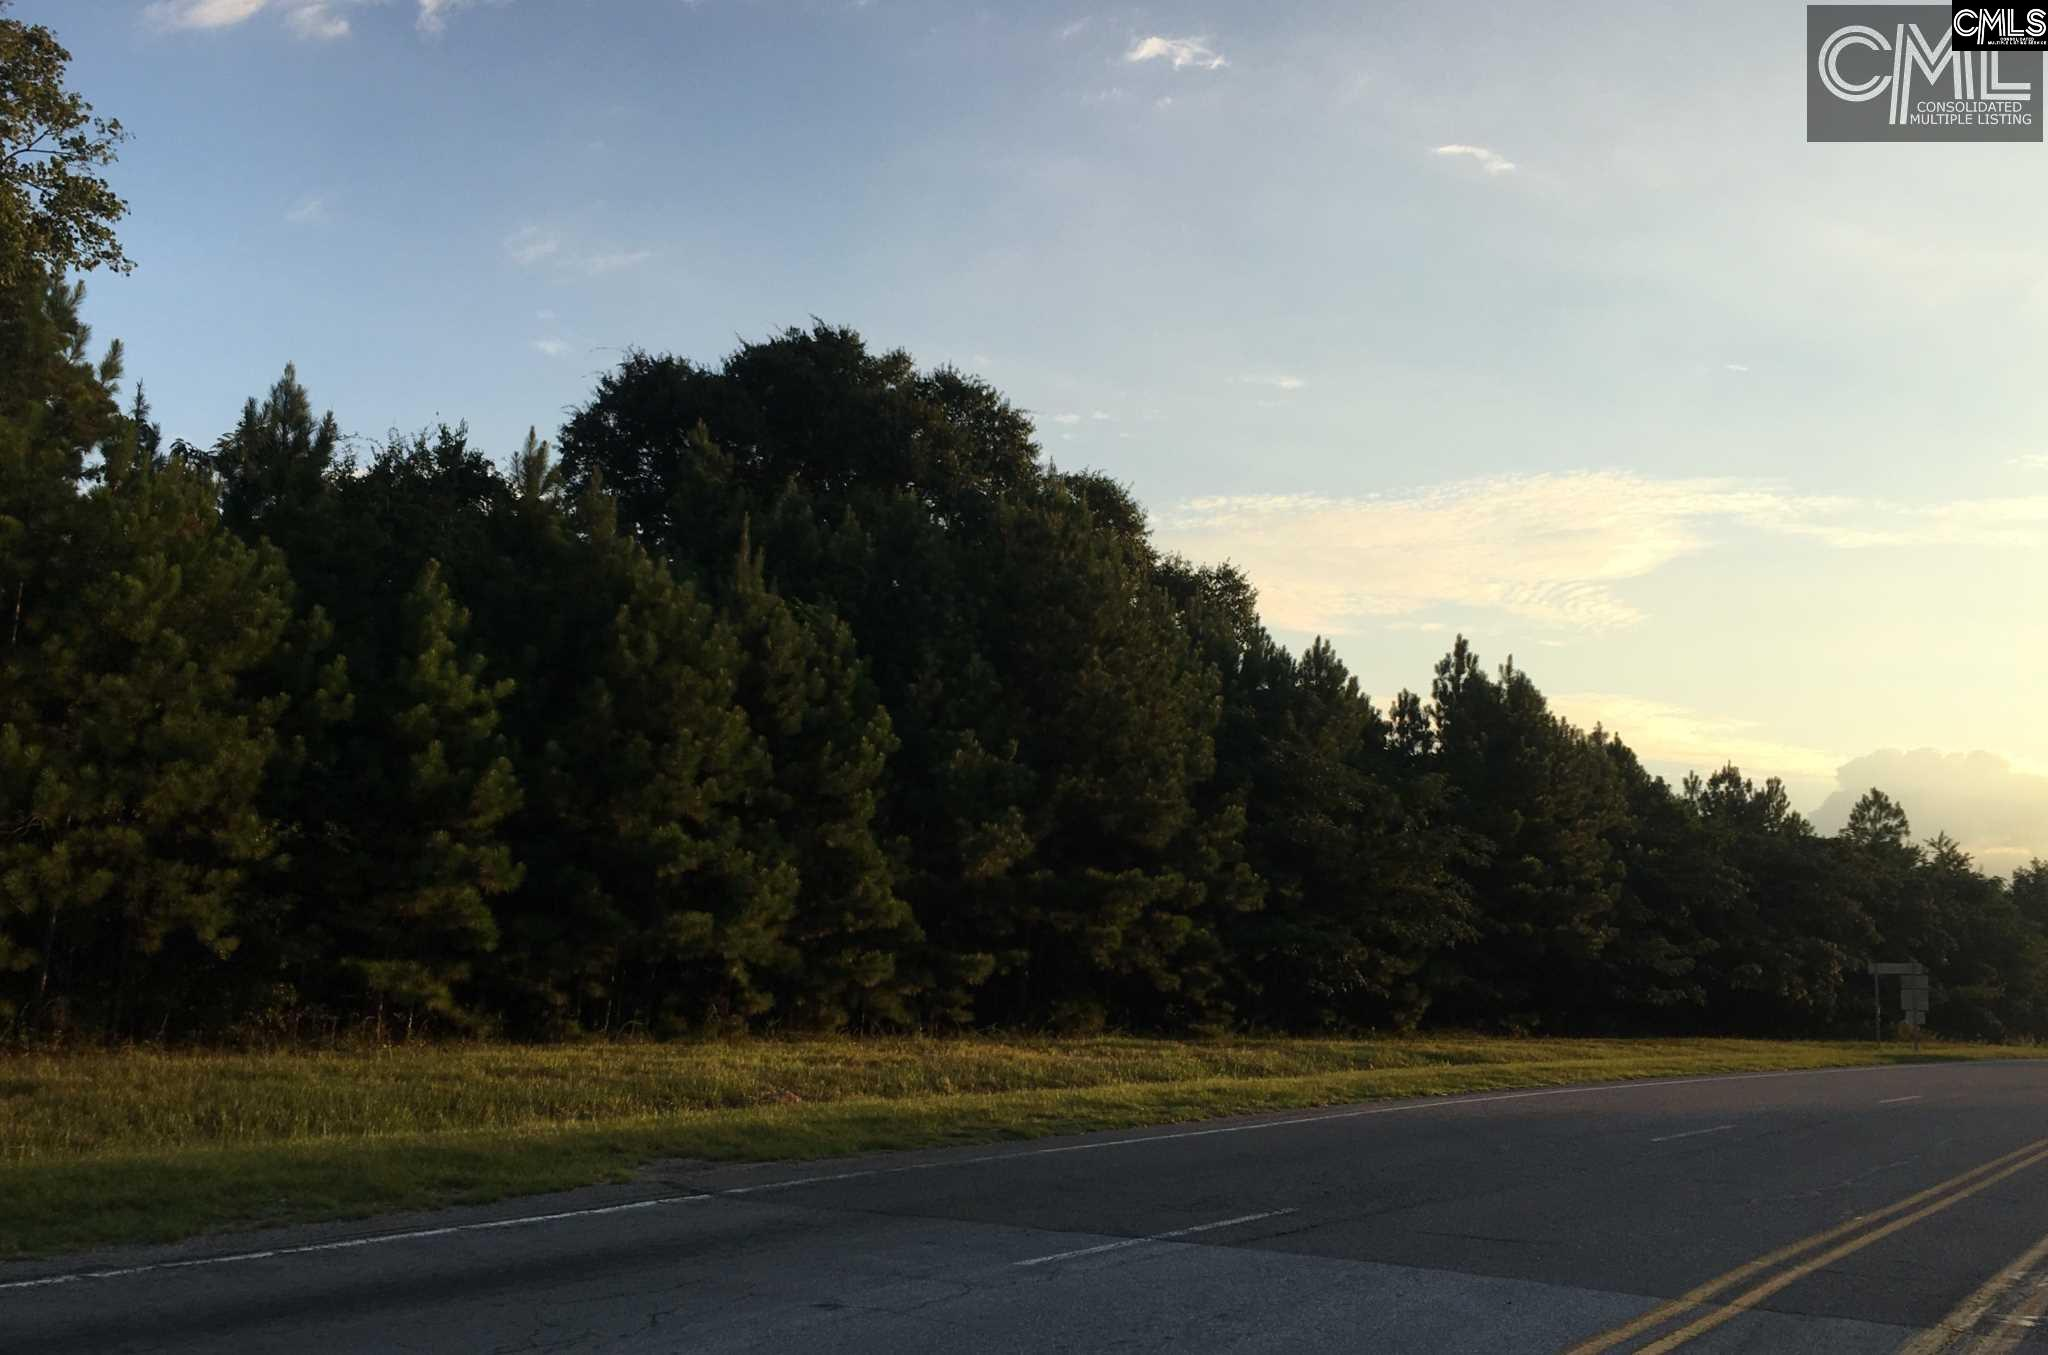 34 Hwy 34 By-pass Newberry, SC 29108